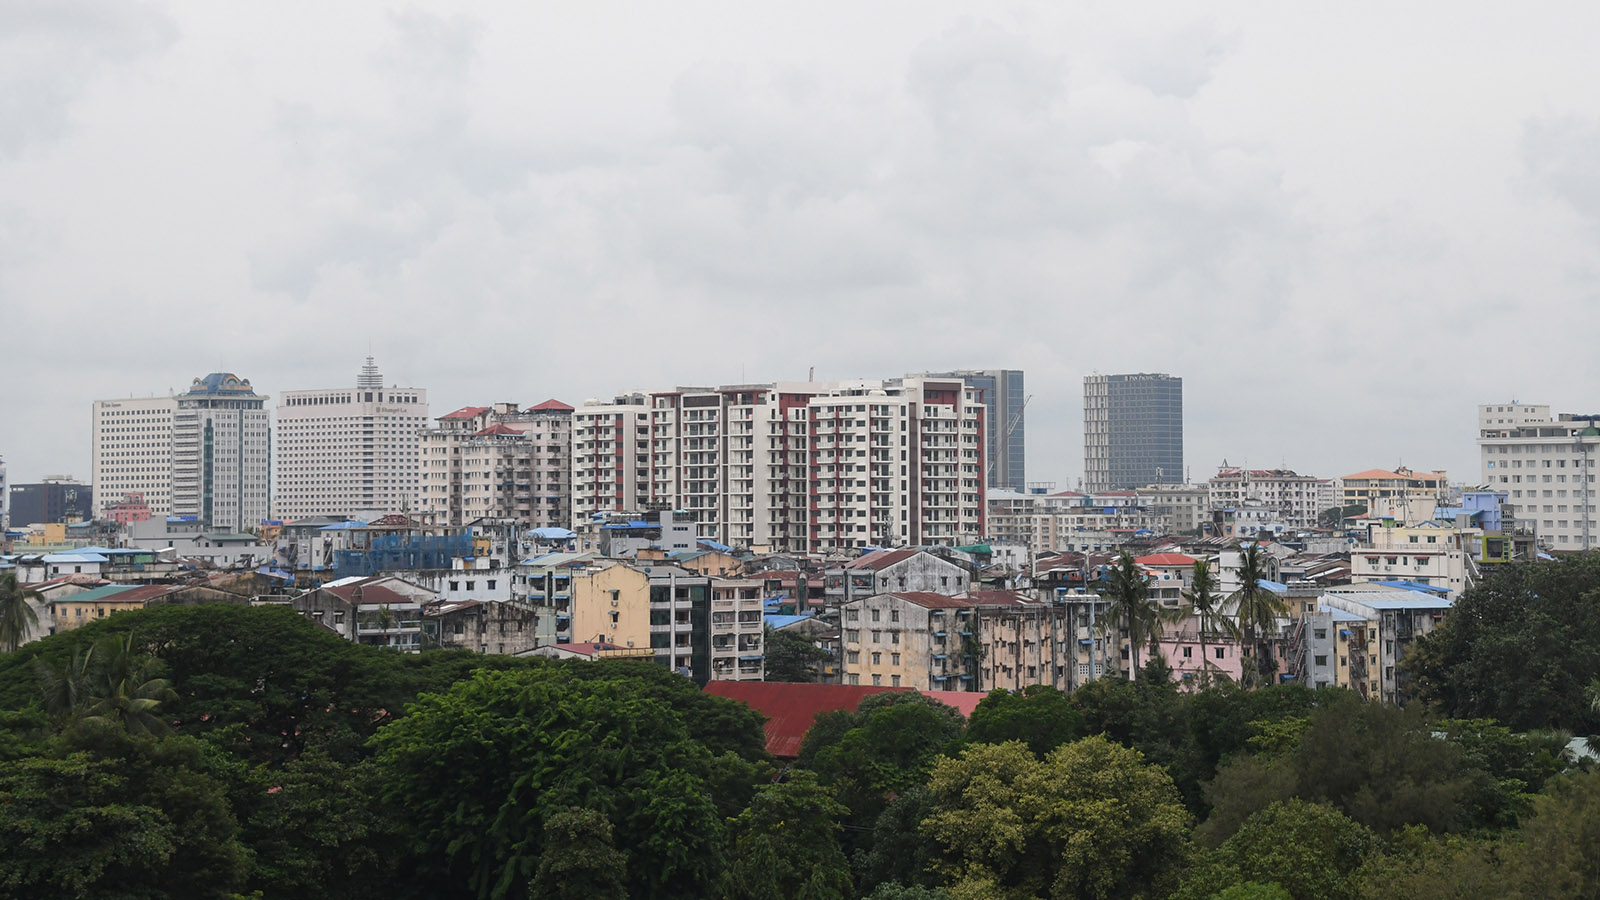 File photo shows an aerial view of Yangon City with high-rise buildings.Photo: MNA